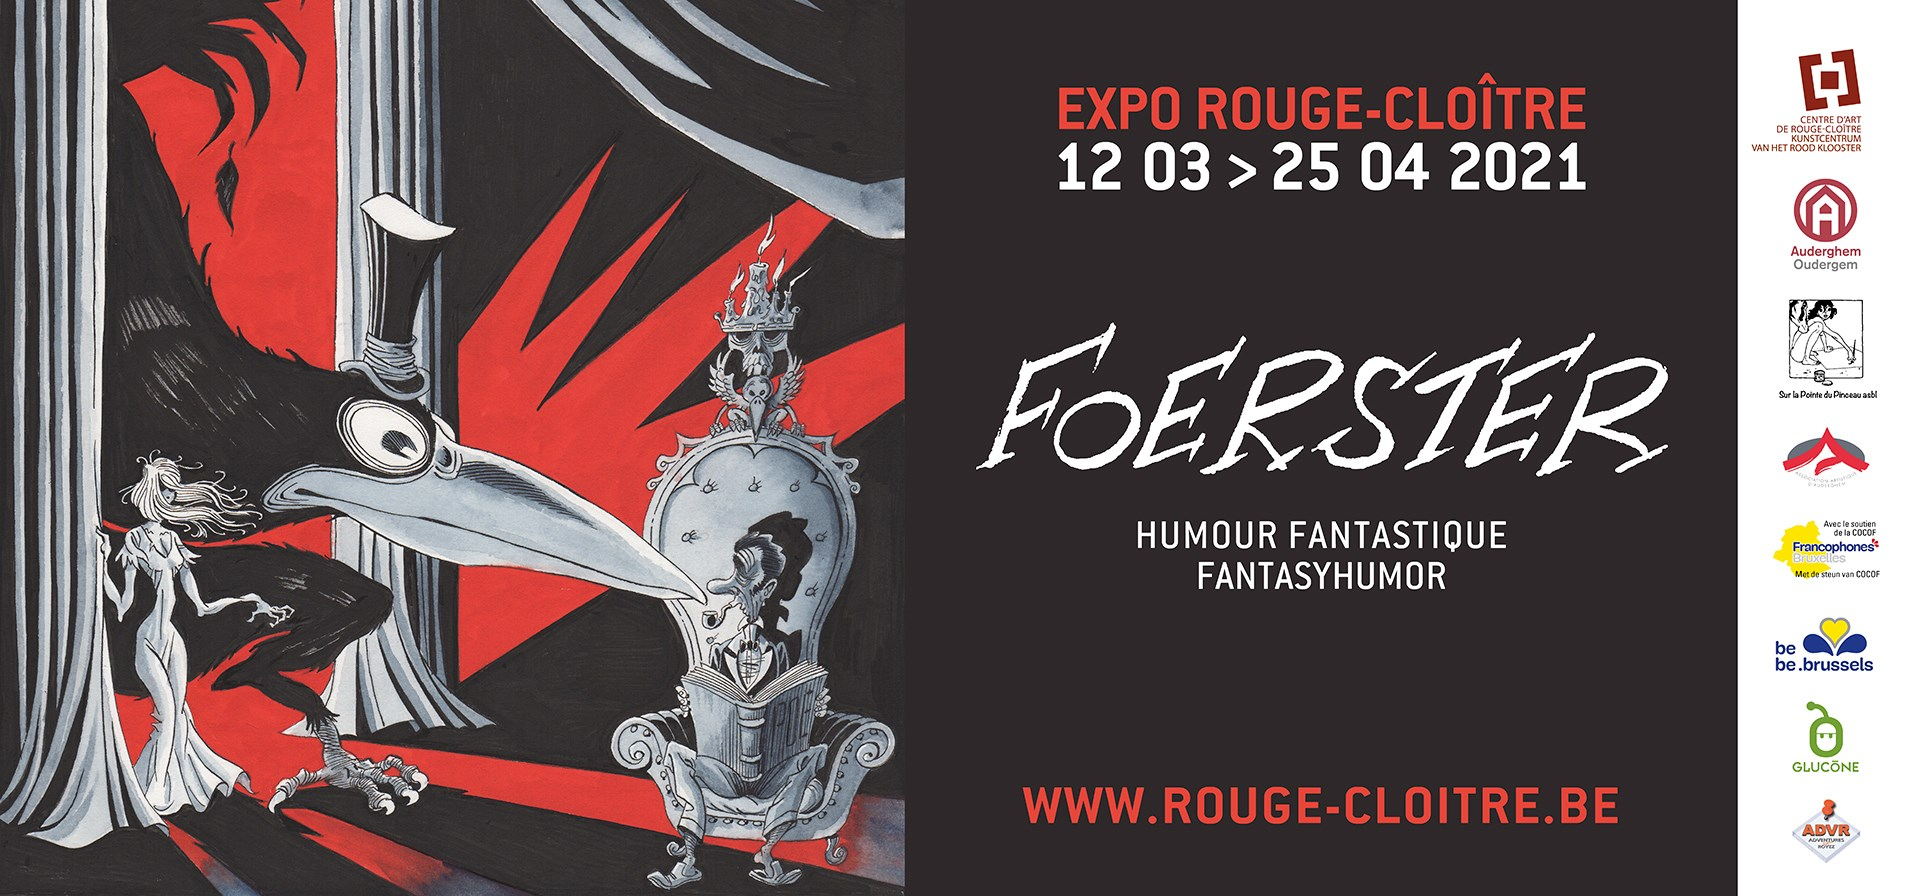 Expo :  Foerster, humour fantastique